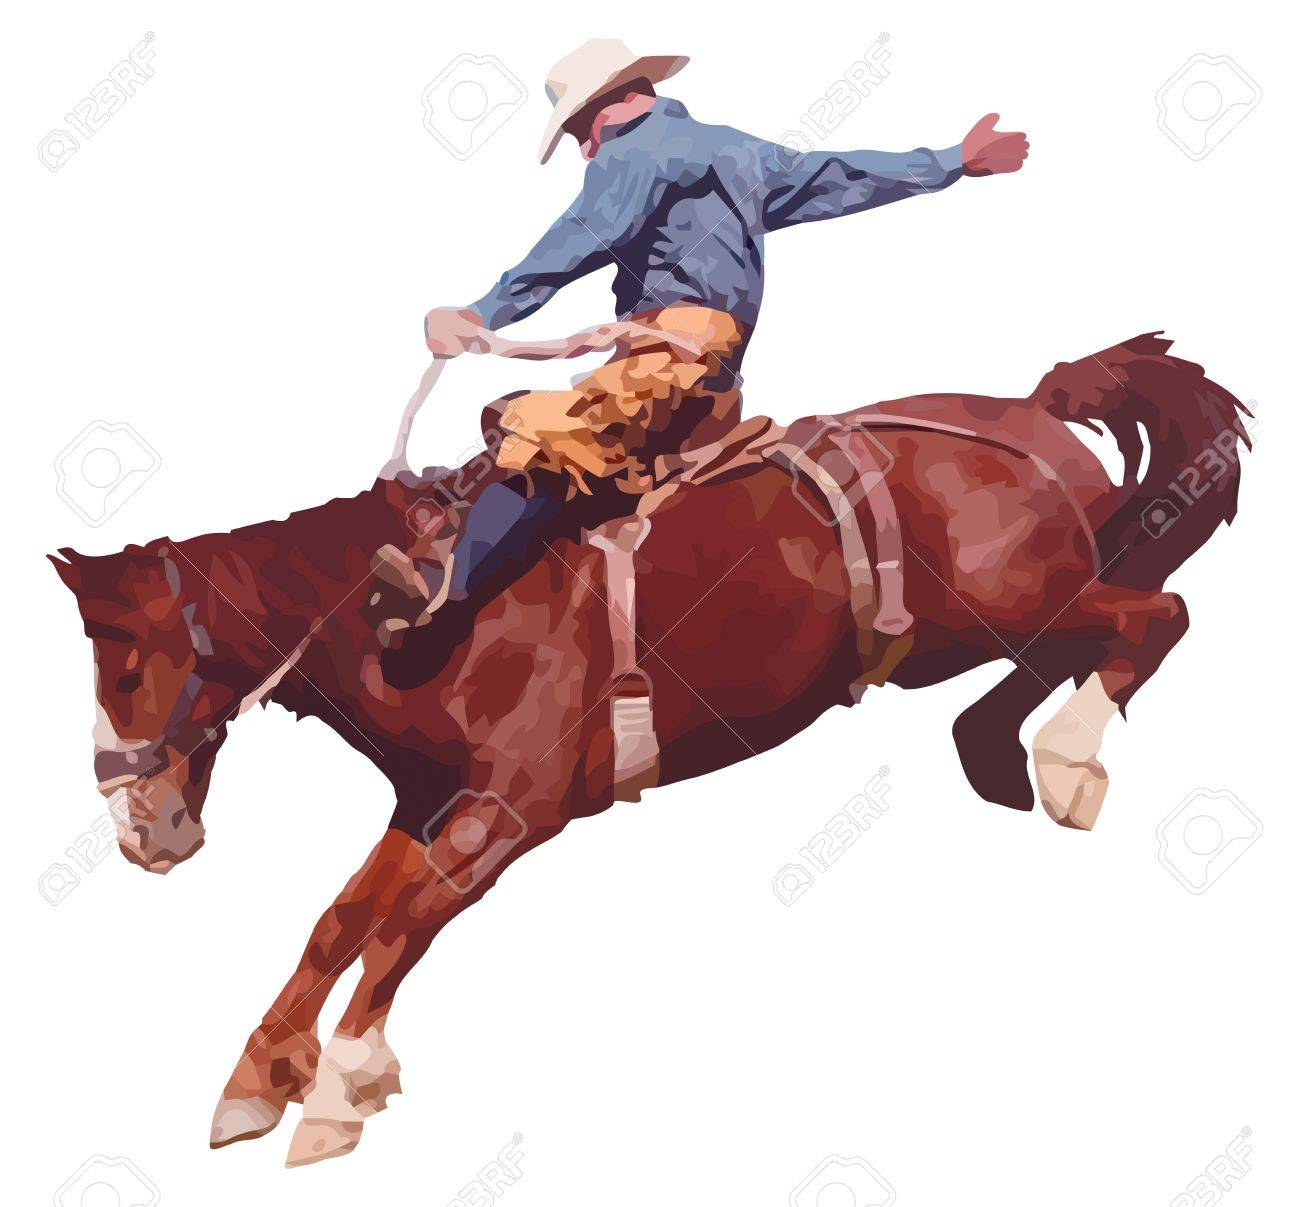 Illustration Of Cowboy Riding Horse At Rodeo Royalty Free Cliparts